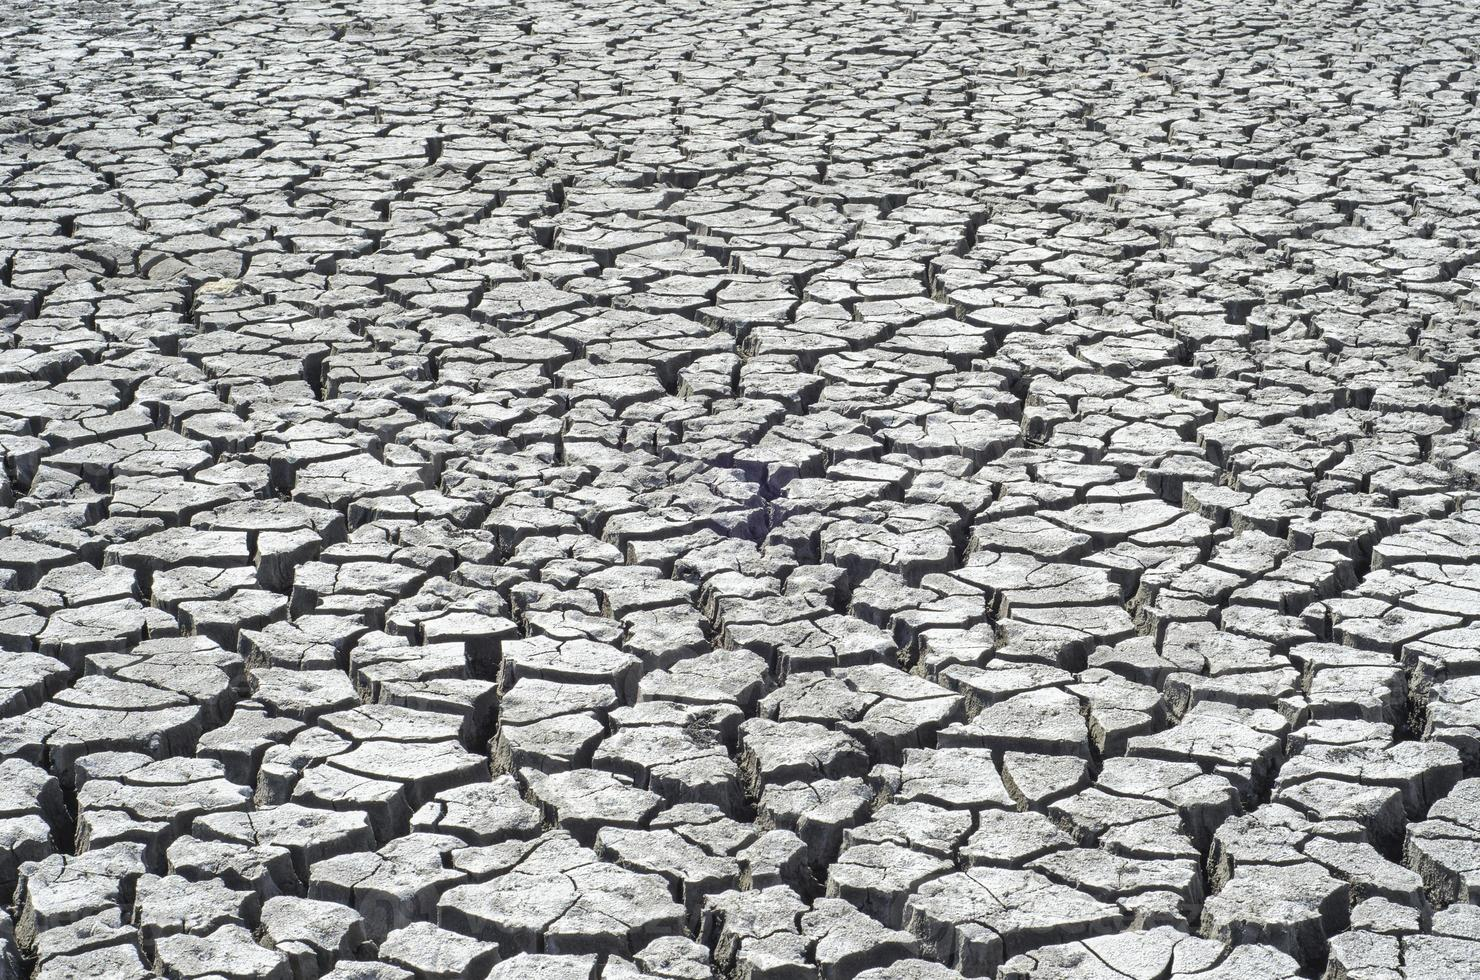 cracked surface of desert as background photo